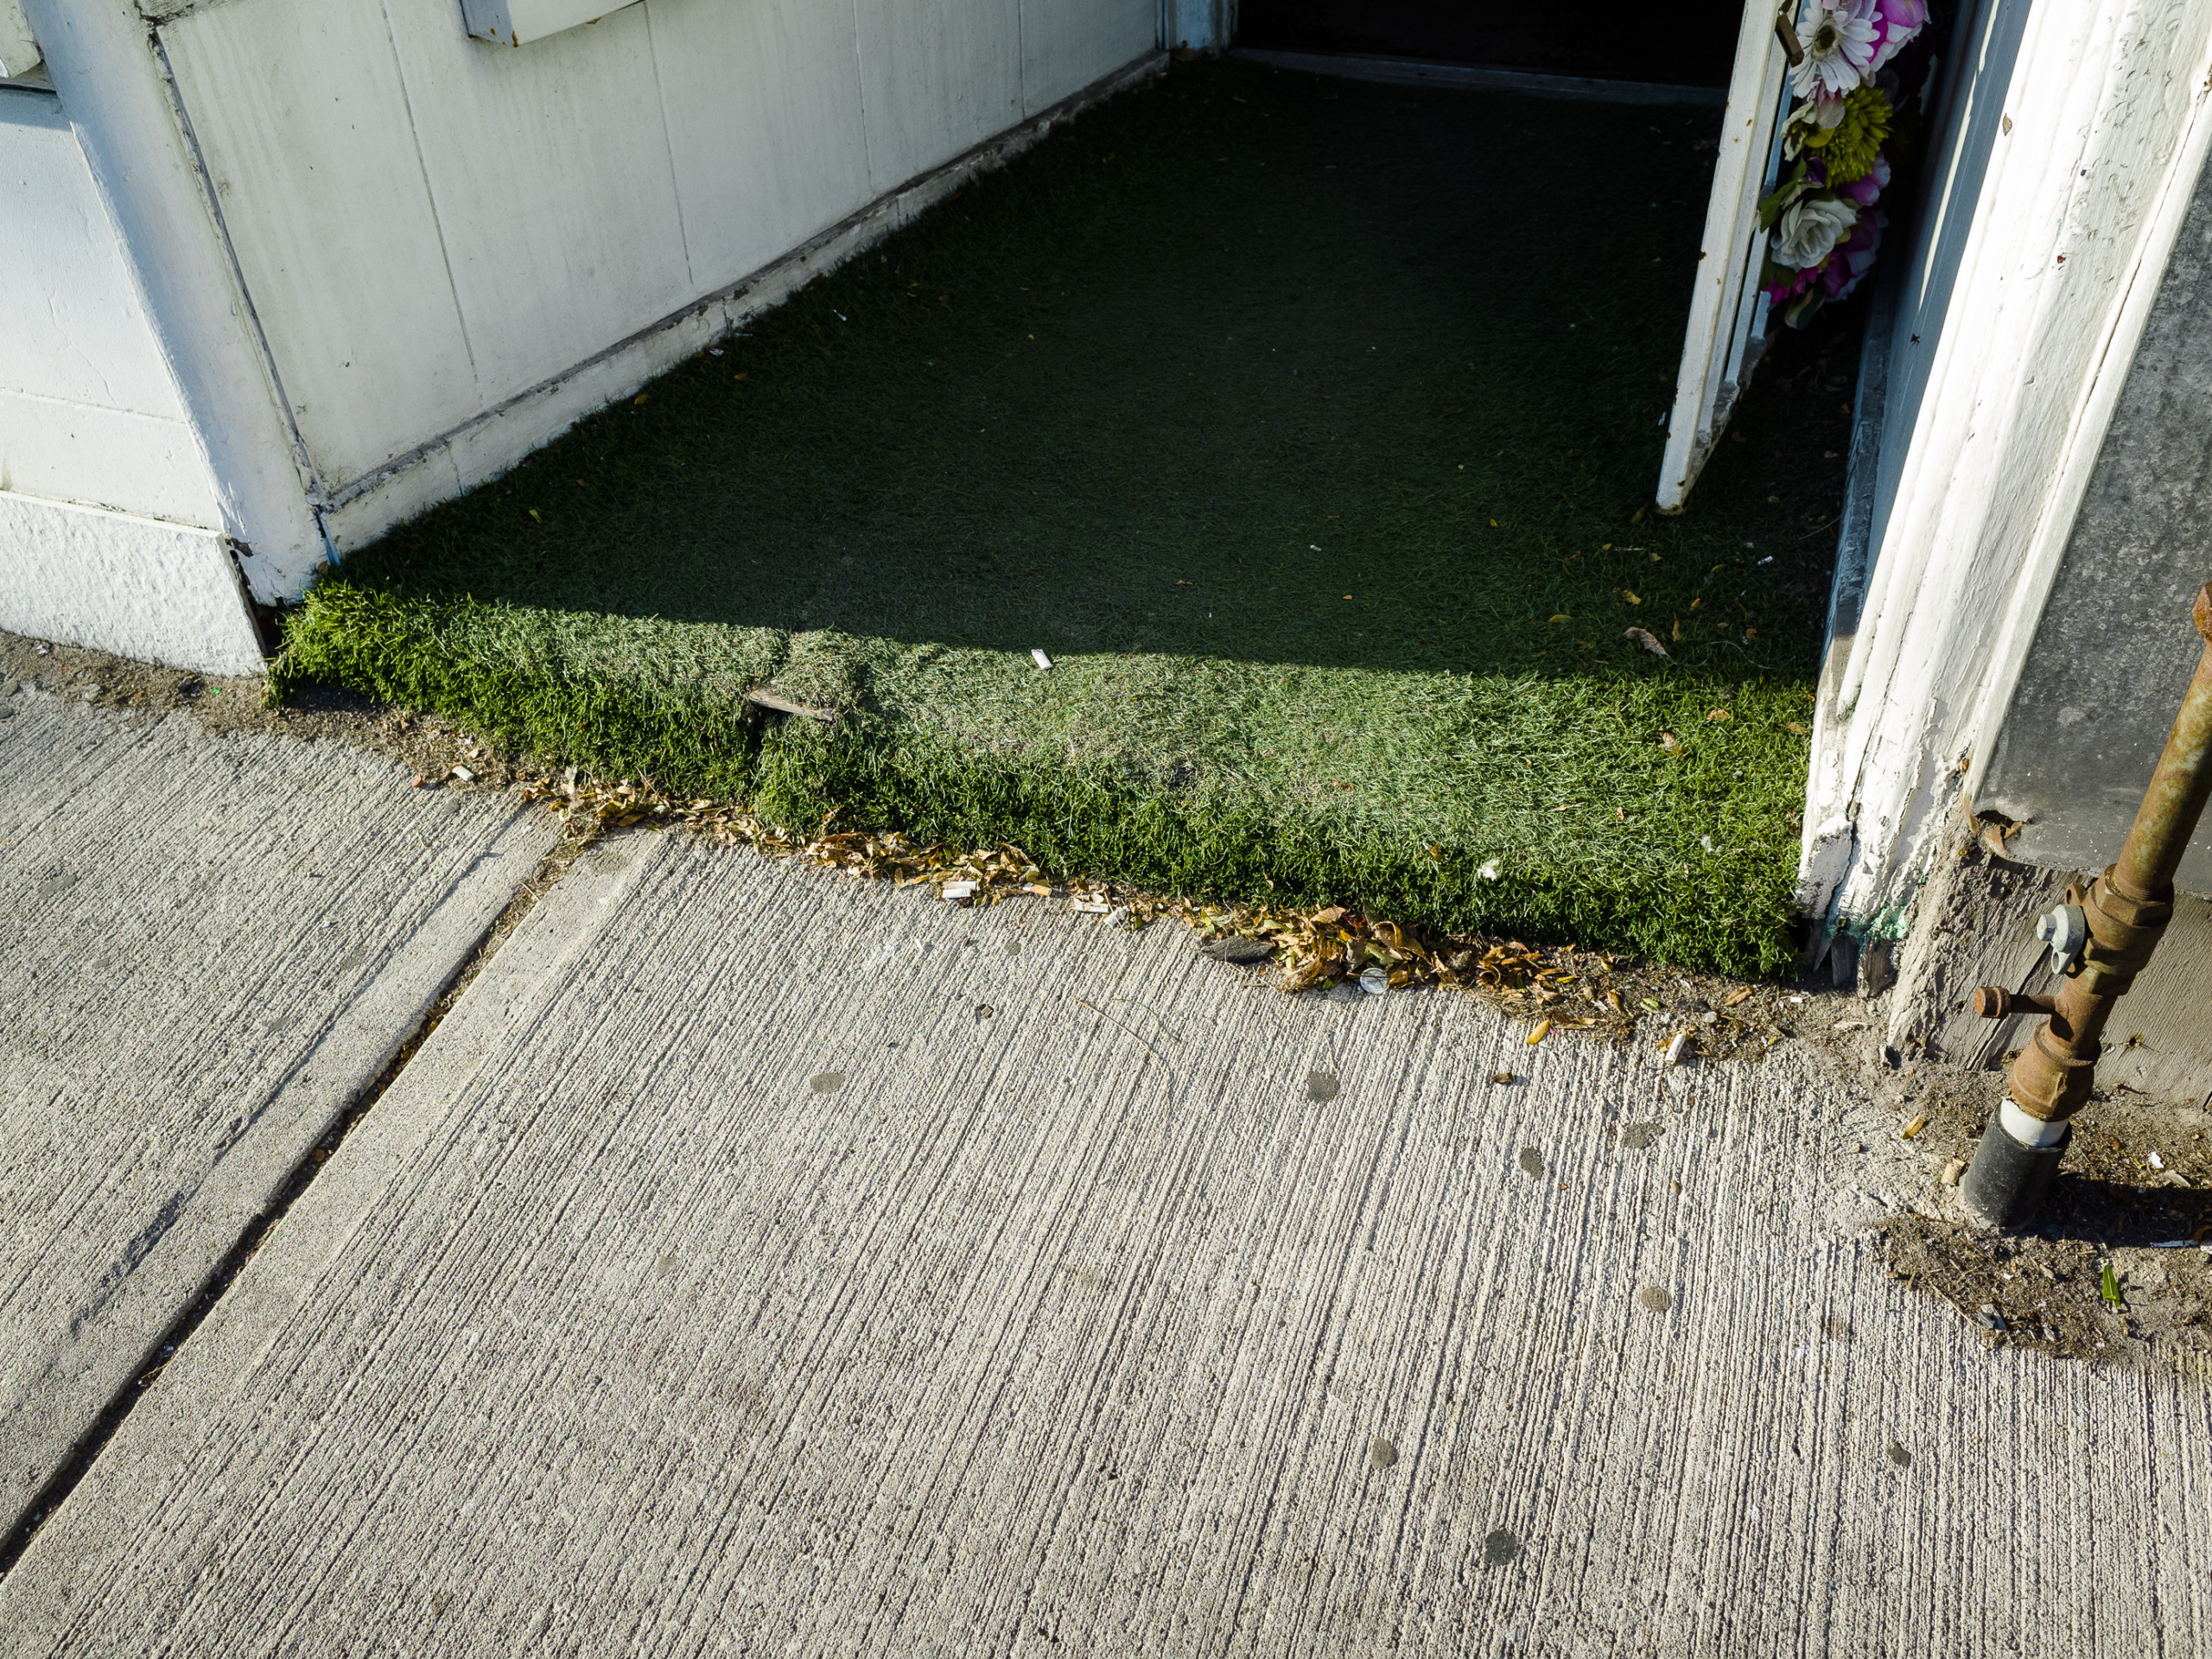 Atanas Bozdarov and Craig Rodmore, Every Step on Queen Street West (artificial grass, artificial flowers on door), 2020